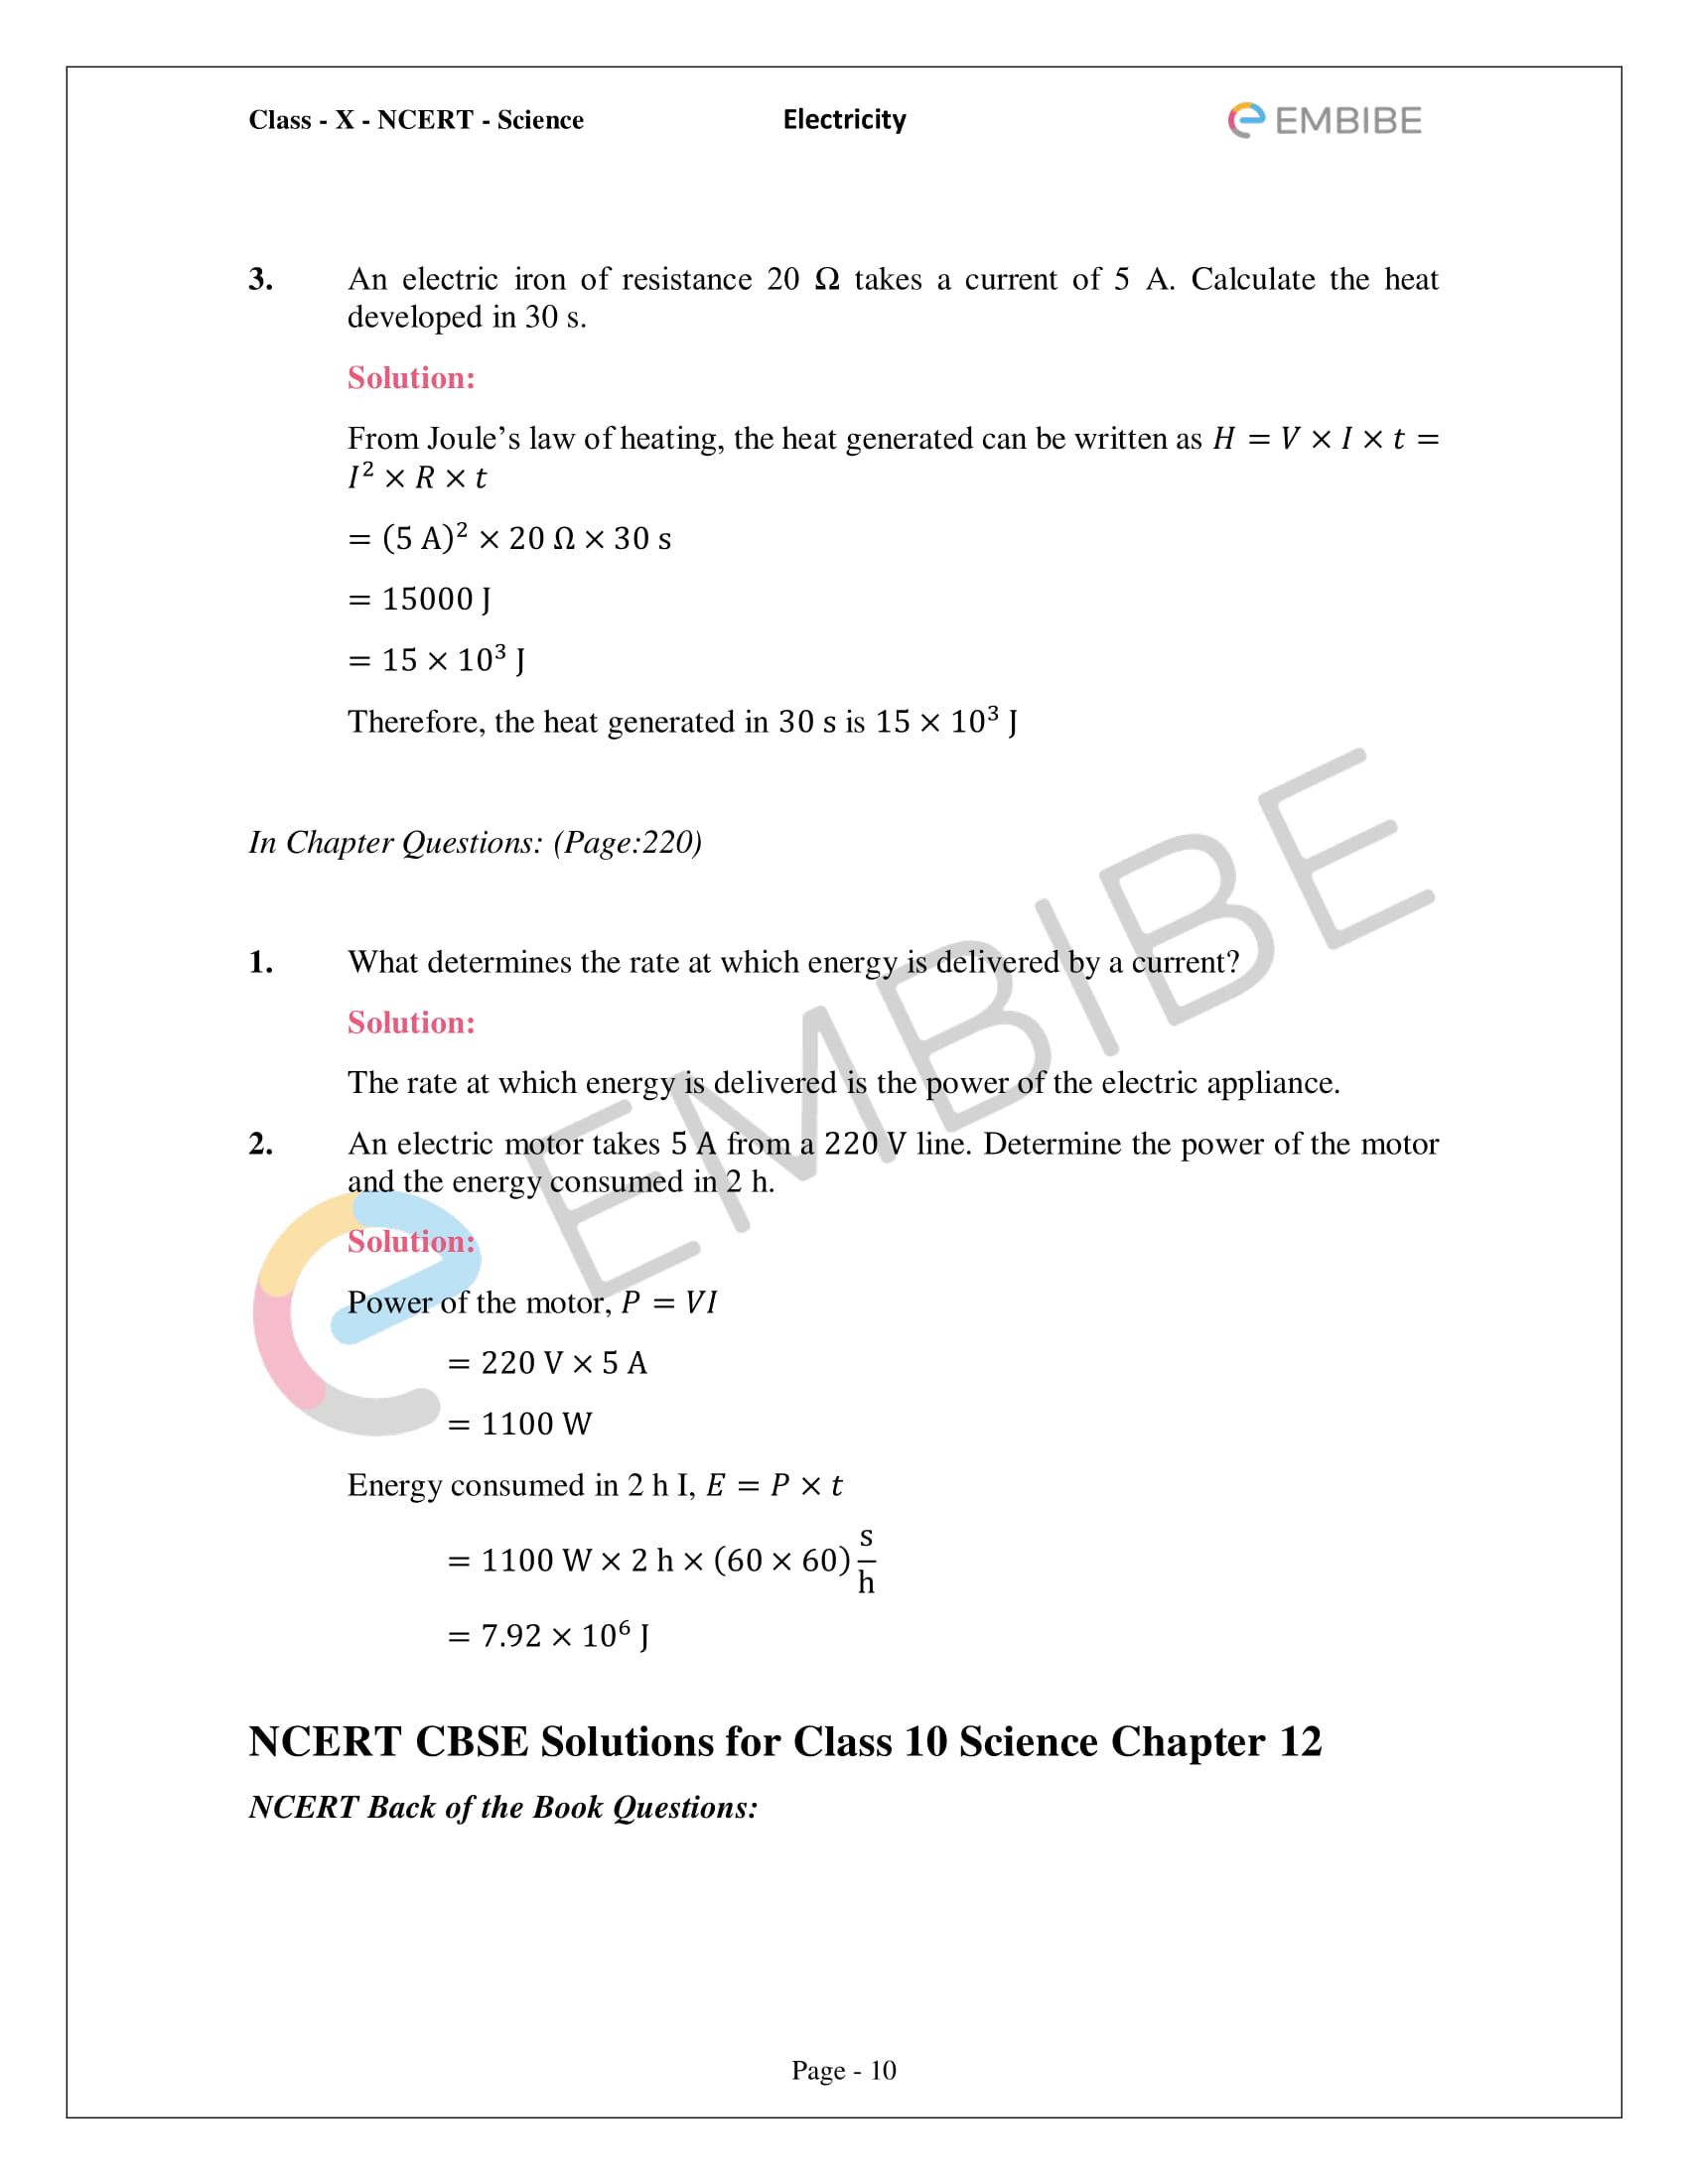 CBSE NCERT Solutions For Class 10 Science Chapter 12 - Electricity - 10